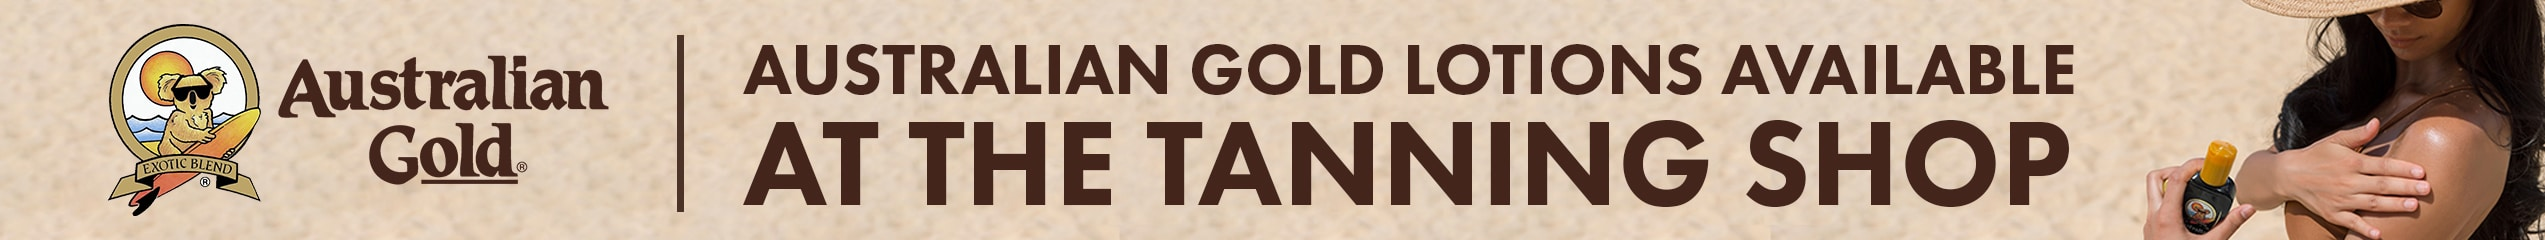 Aussie Gold available in the tanning shop banner